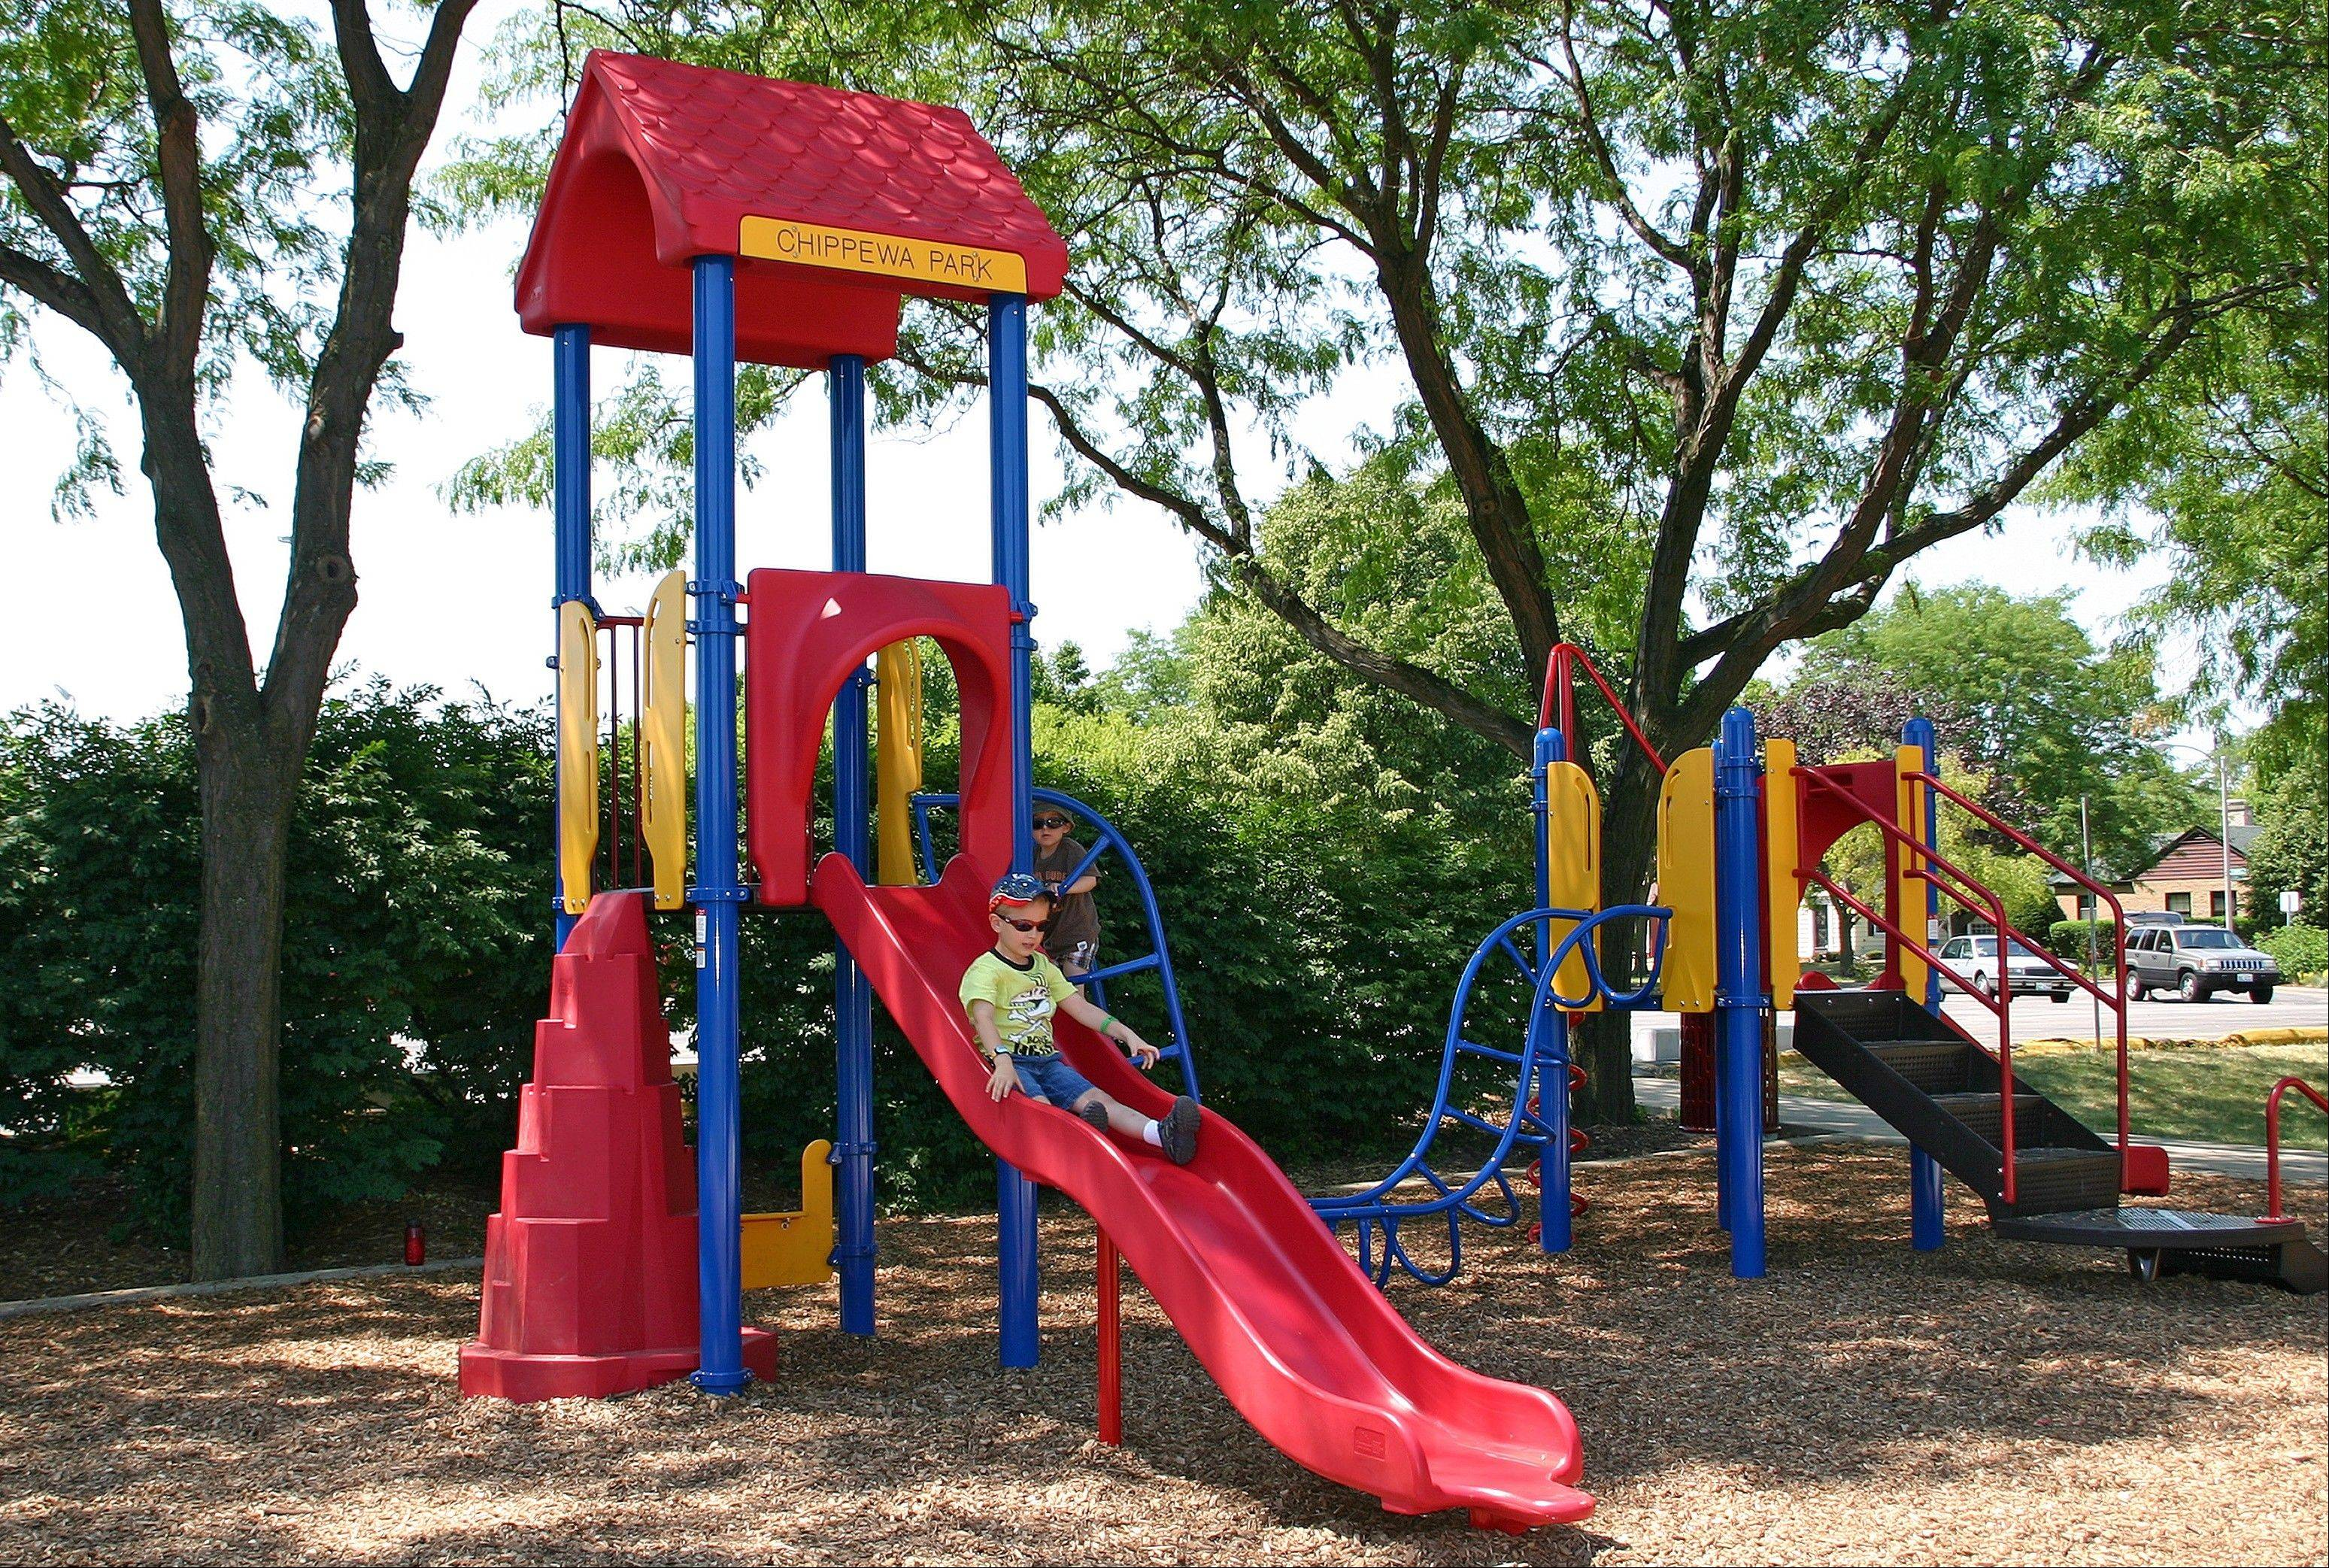 The new playground at Chippewa Park has two slides, four swings, and plenty of places to climb and play.